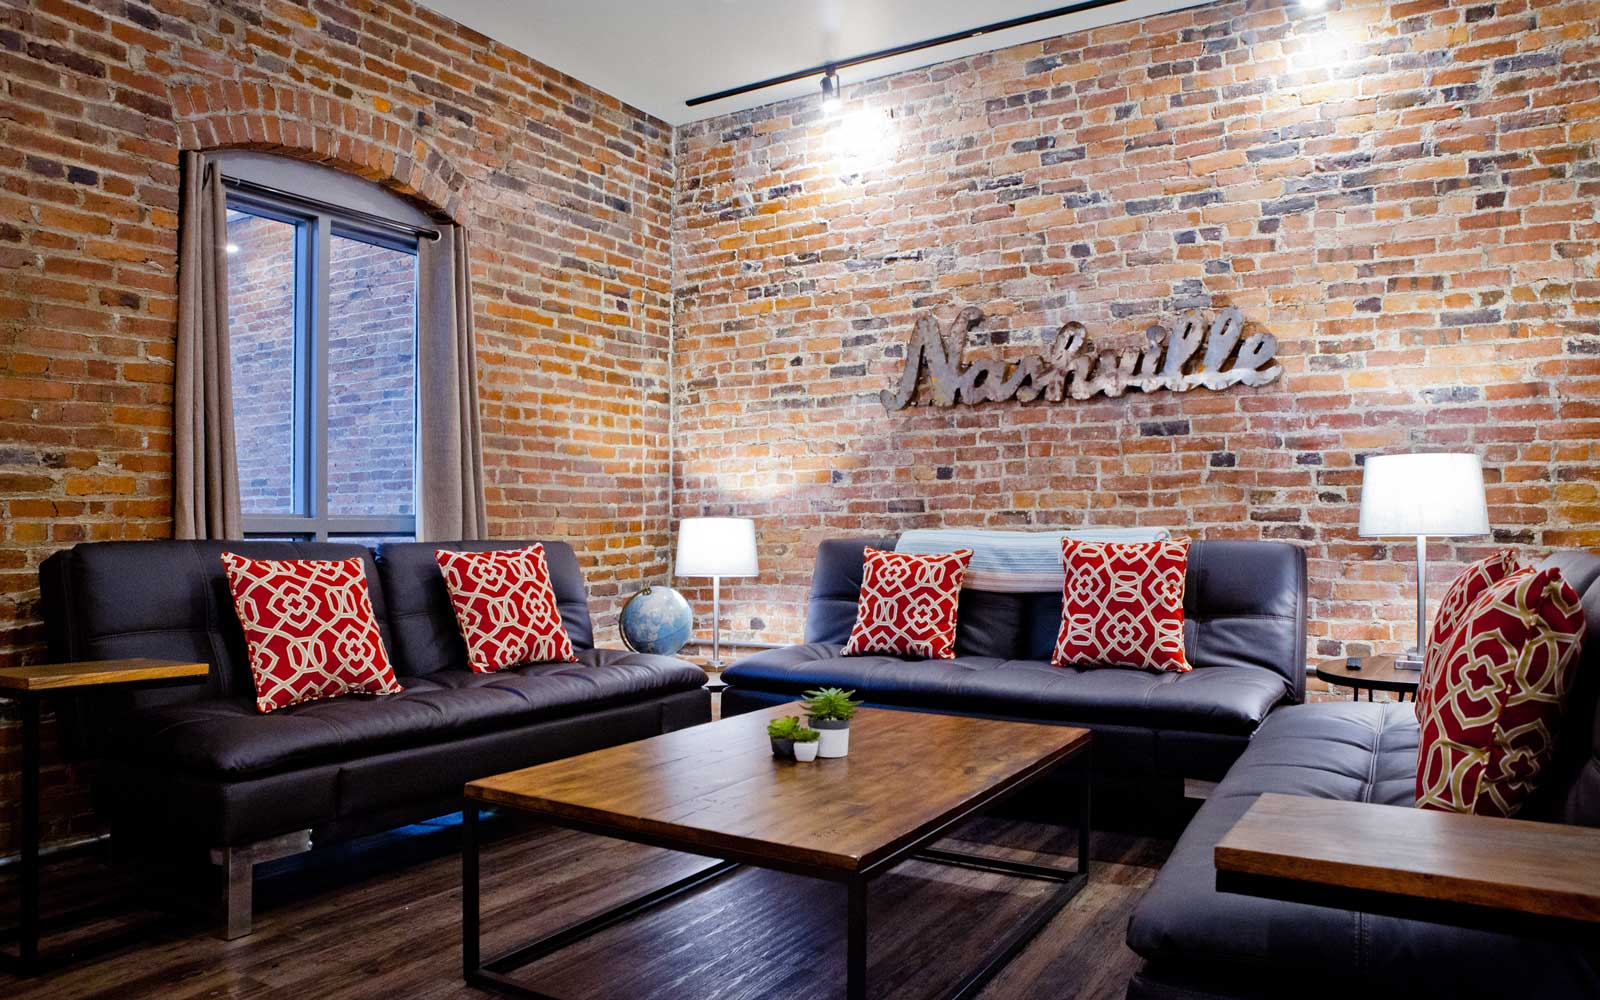 Airbnb Nashville for best New Years Eve Trip